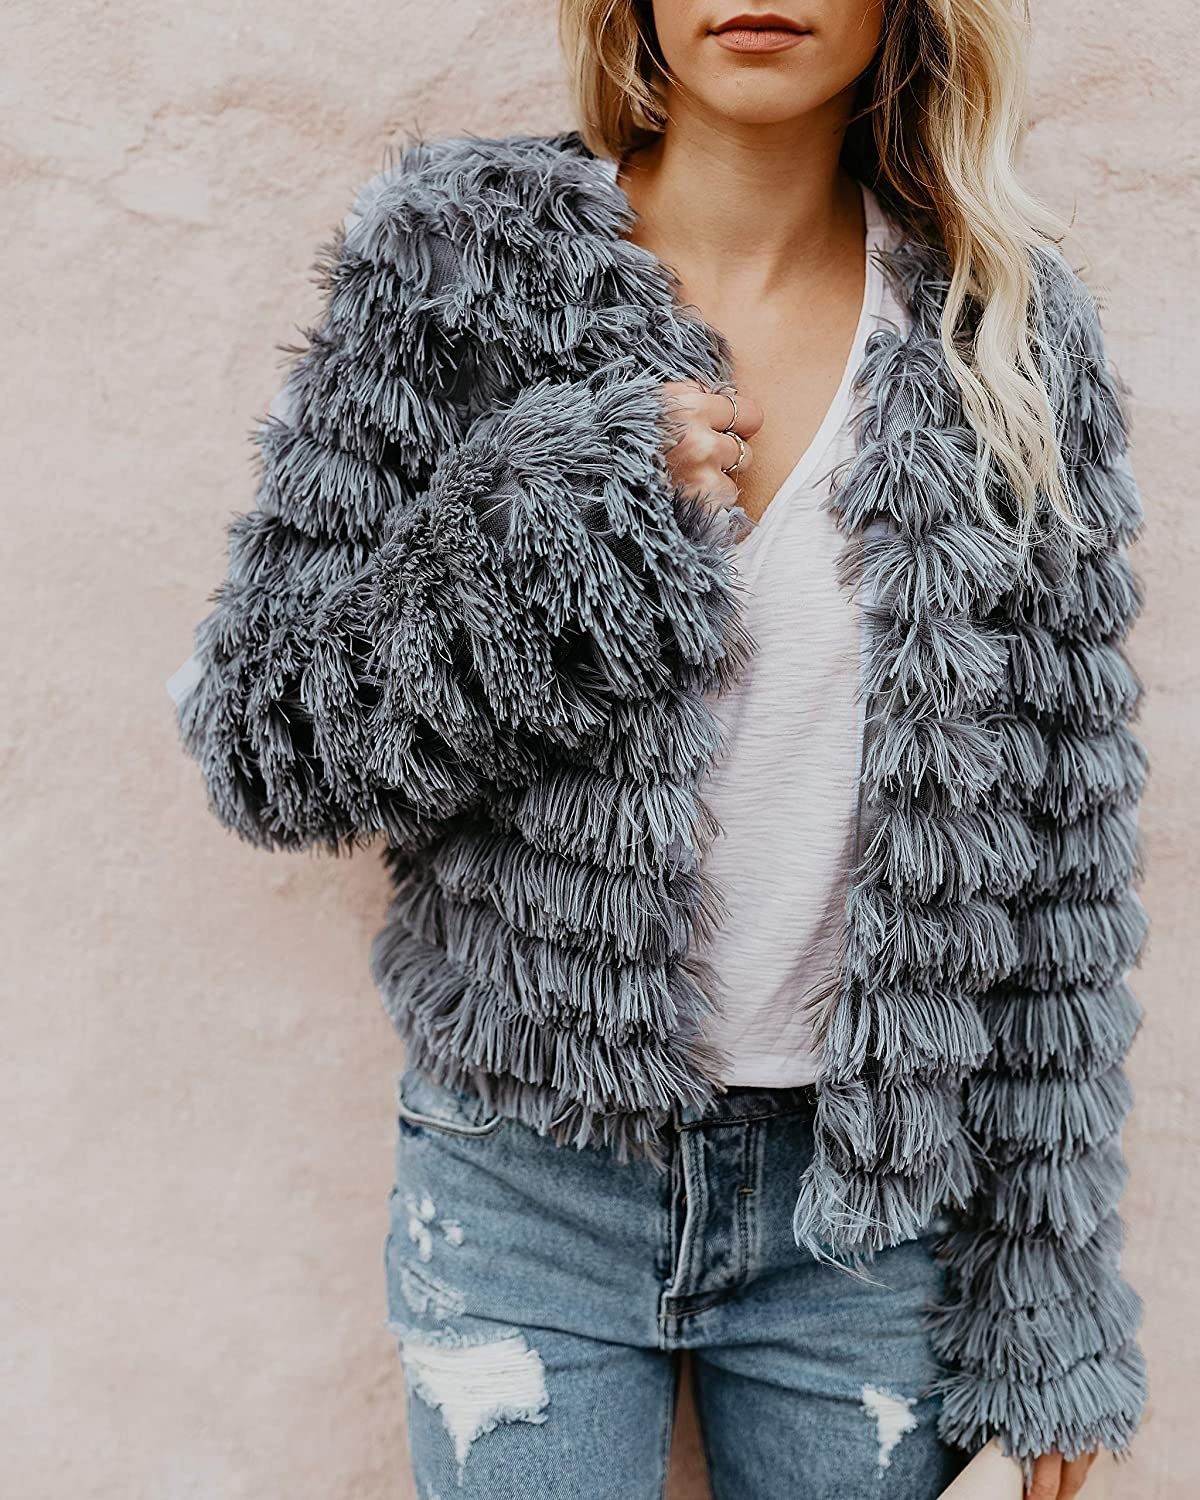 close up of model wearing the gray shaggy parka over a white tee and distressed jeans